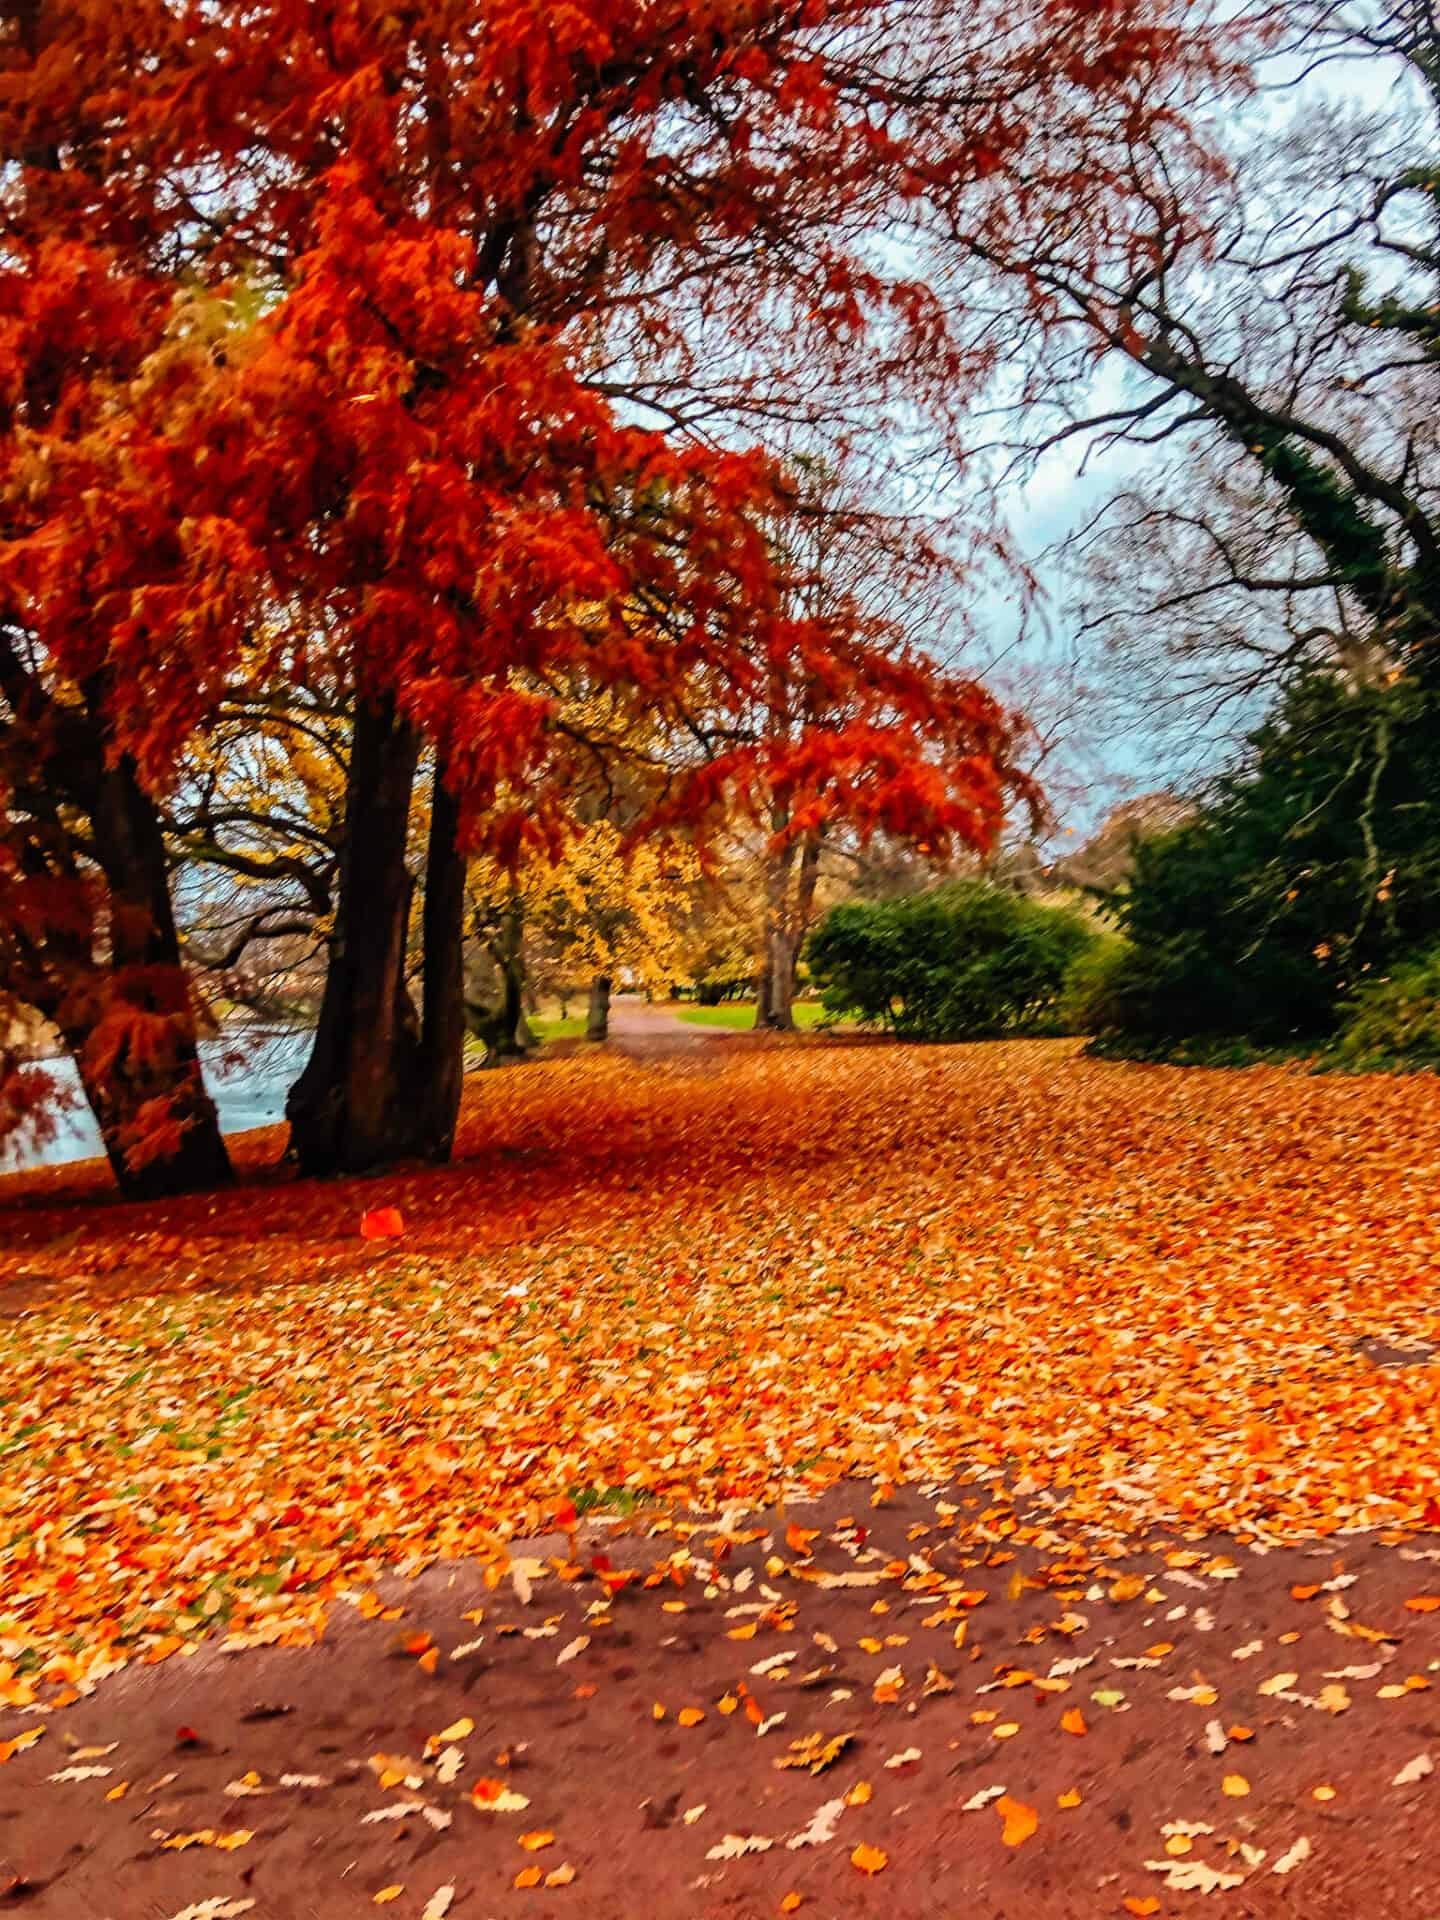 Autumn leaves on the trees and the footpath of a park